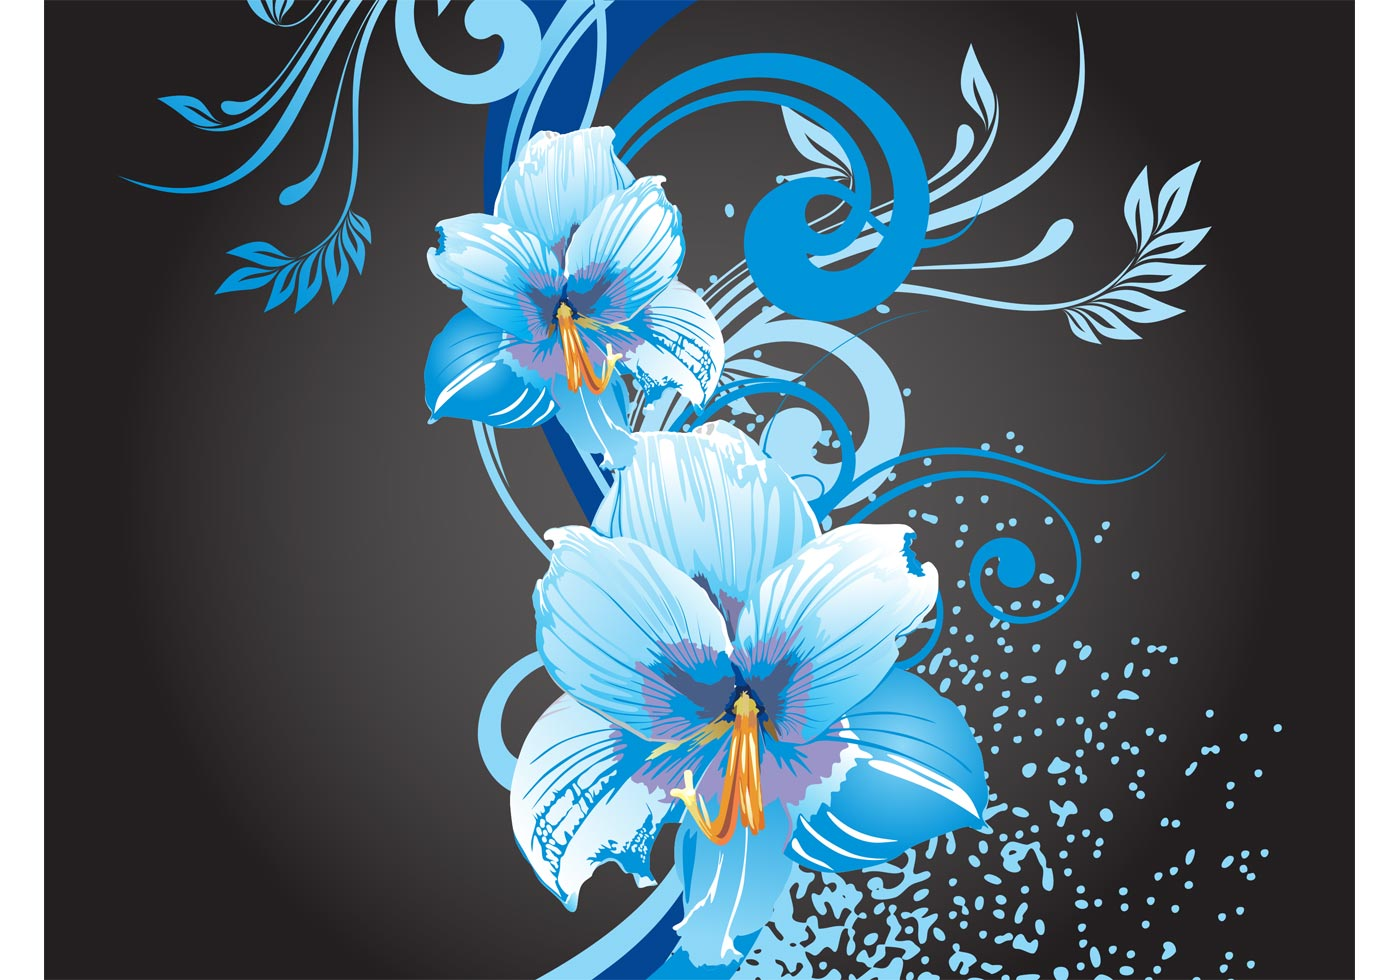 Blue flowers graphics download free vector art stock graphics blue flowers graphics download free vector art stock graphics images izmirmasajfo